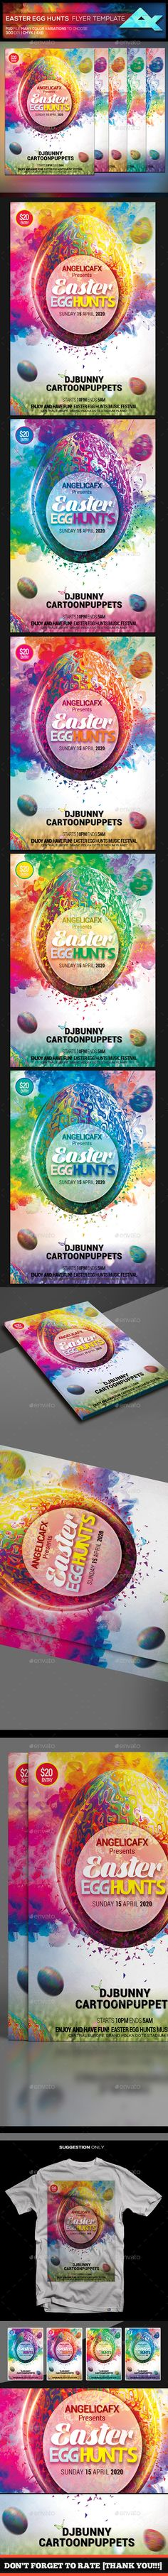 Easter Egg Hunts Festival Flyer Template — Photoshop PSD #colors #nature • Available here → https://graphicriver.net/item/easter-egg-hunts-festival-flyer-template/19748876?ref=pxcr